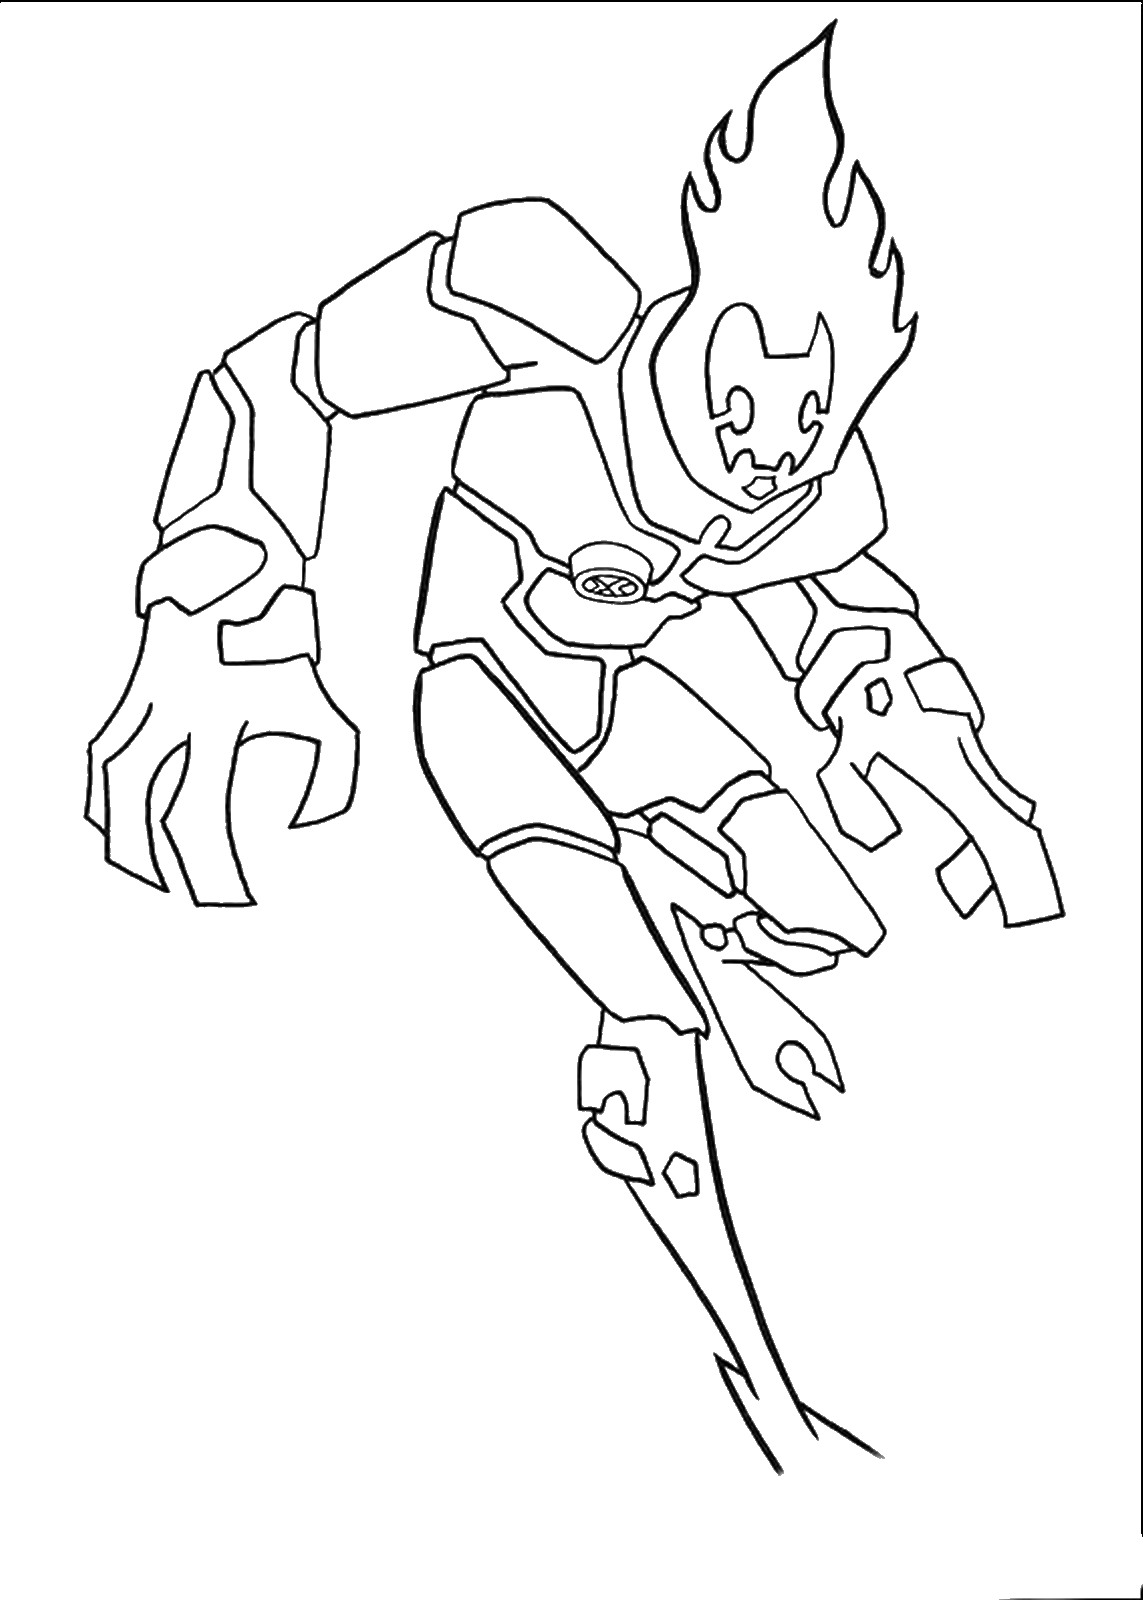 Free Coloring Pages Download Ben 10 Of Ben10 On Xsibe